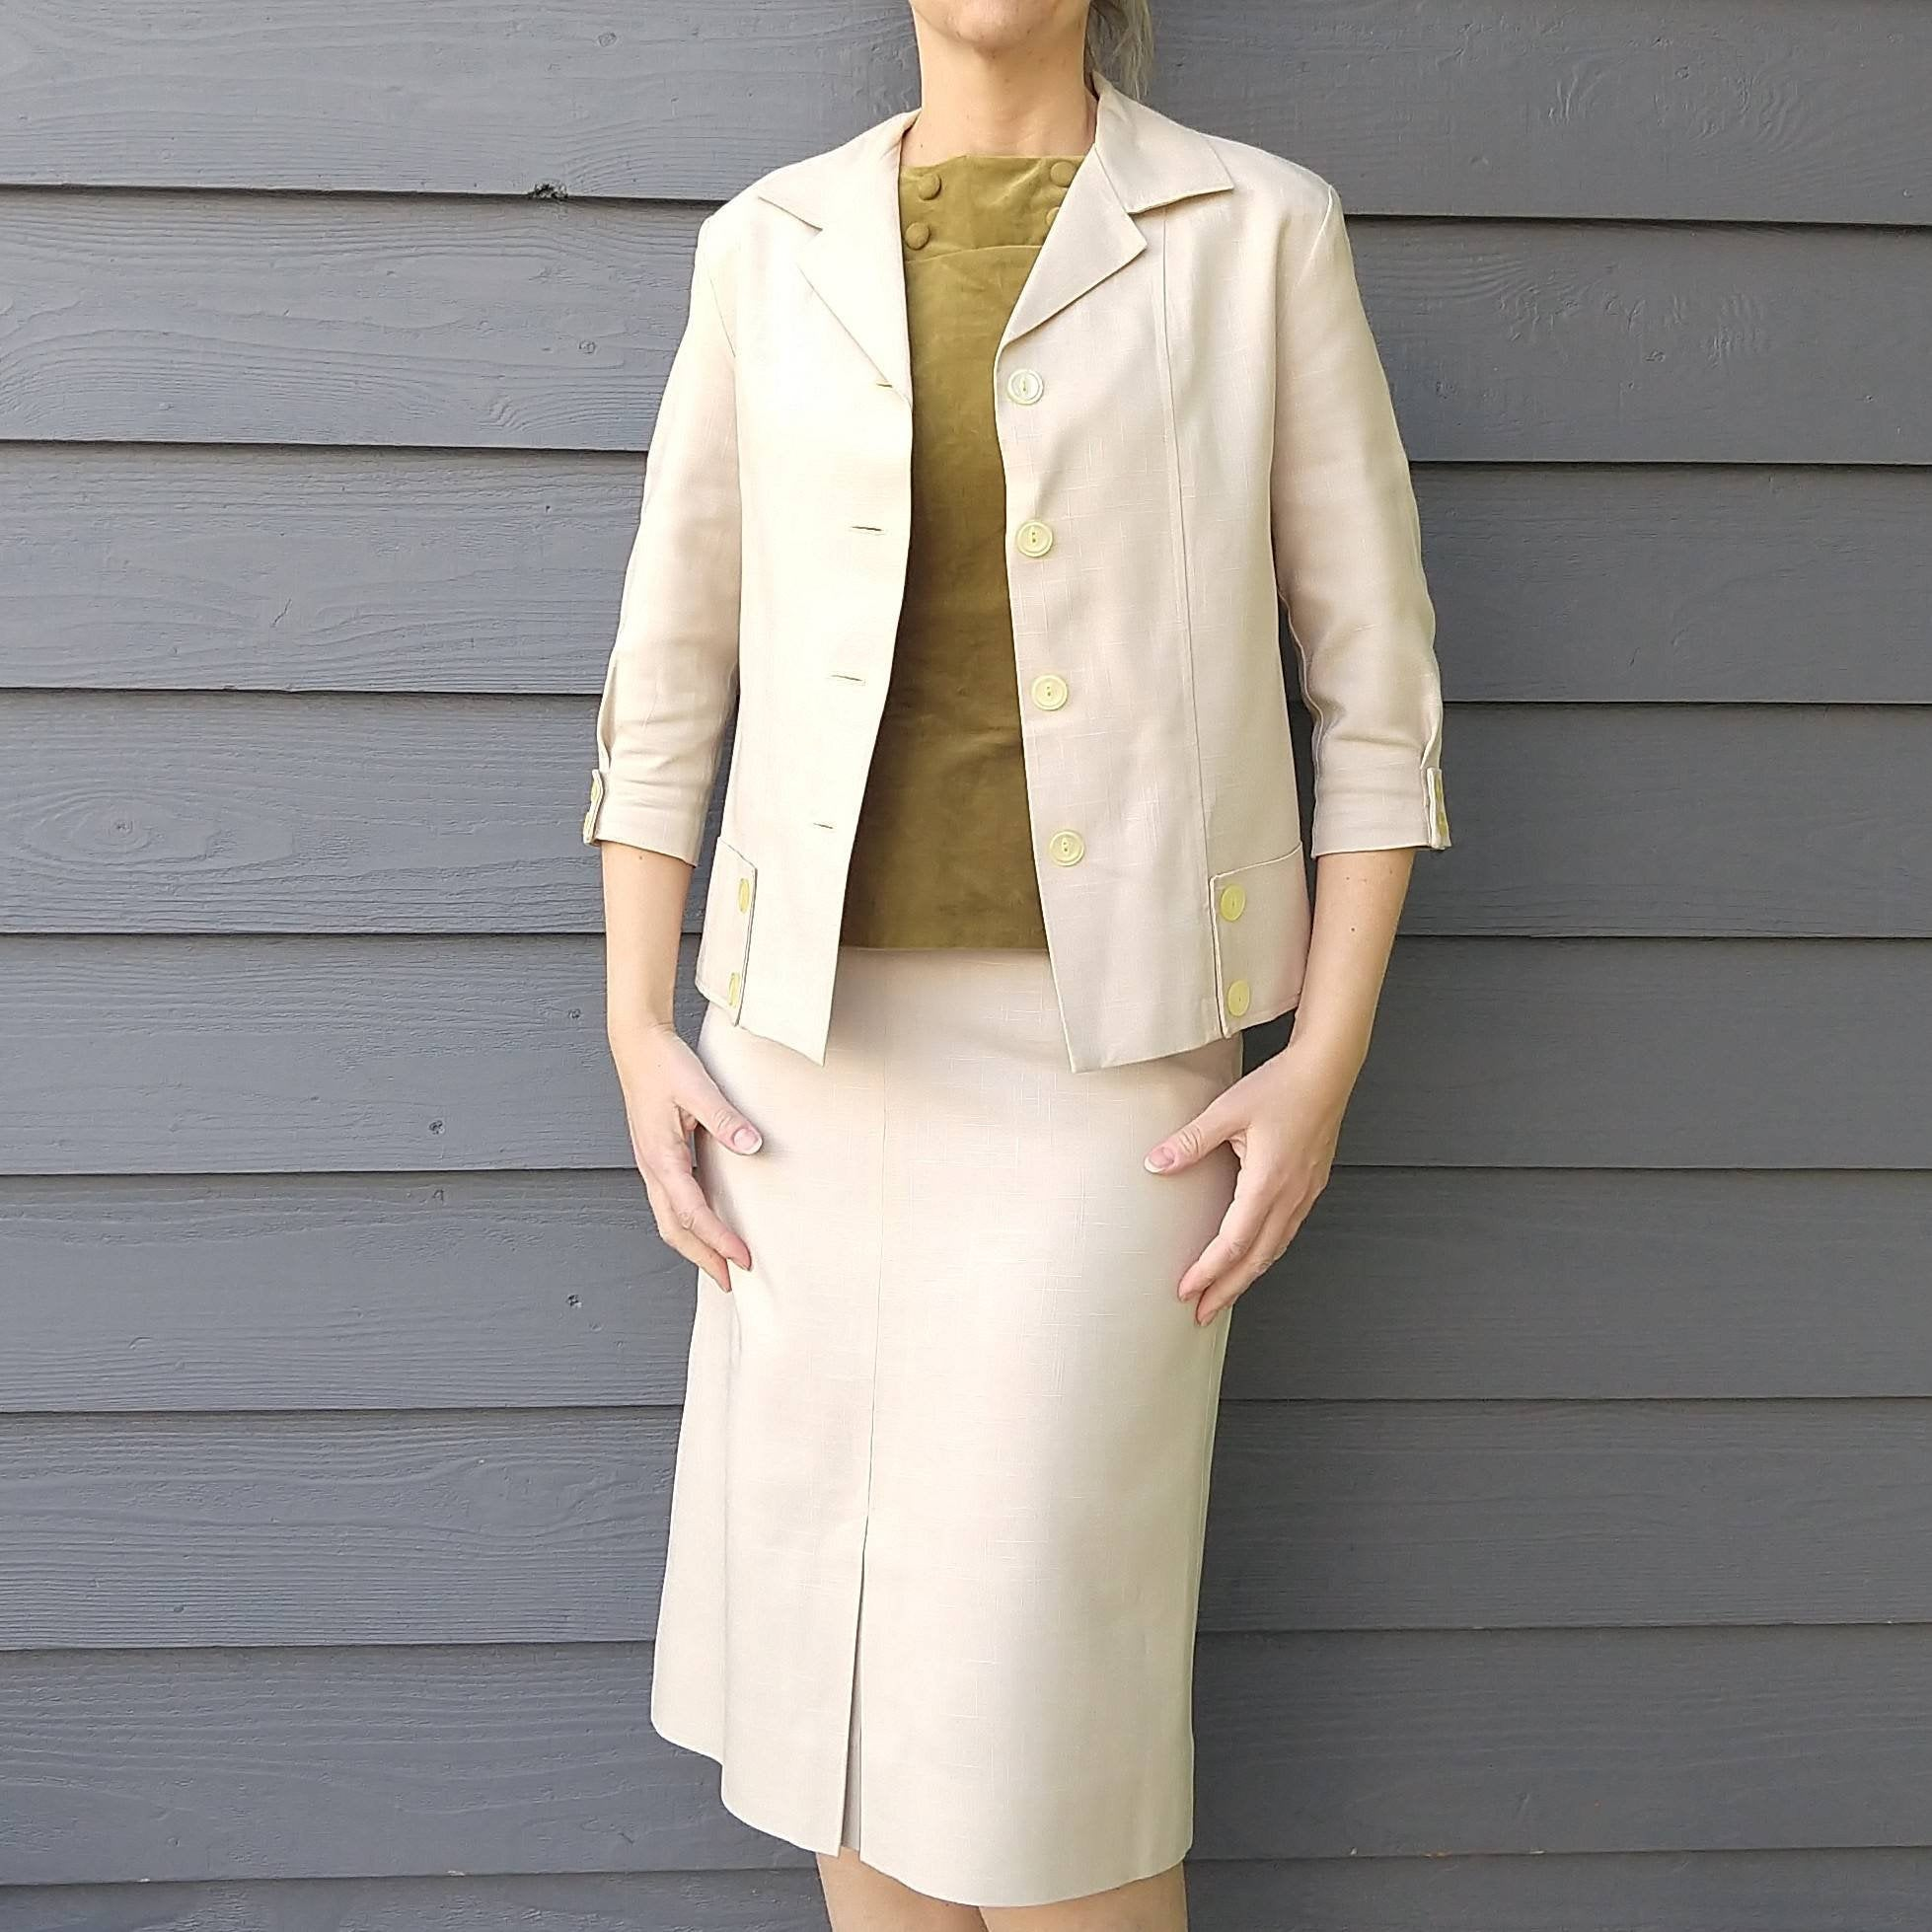 MAYFAIR SUMMER SUIT skirt and jacket set 1960s 60s S